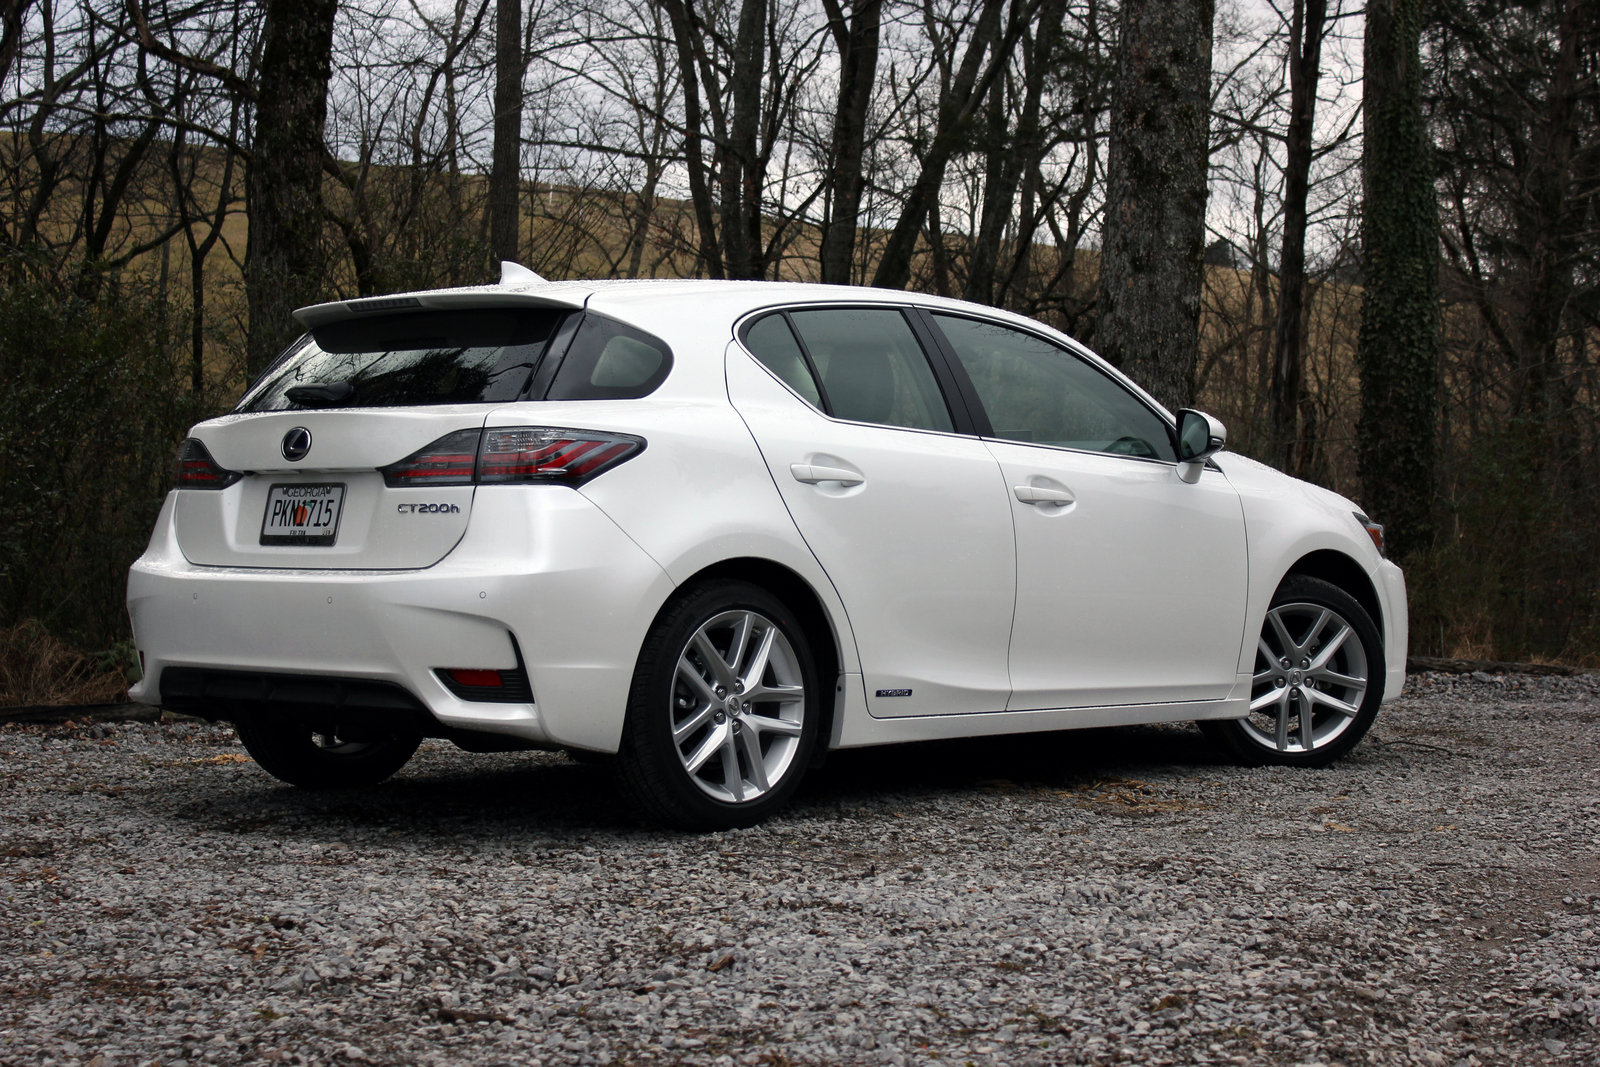 2015 lexus ct 200h driven picture 615172 car review top speed. Black Bedroom Furniture Sets. Home Design Ideas